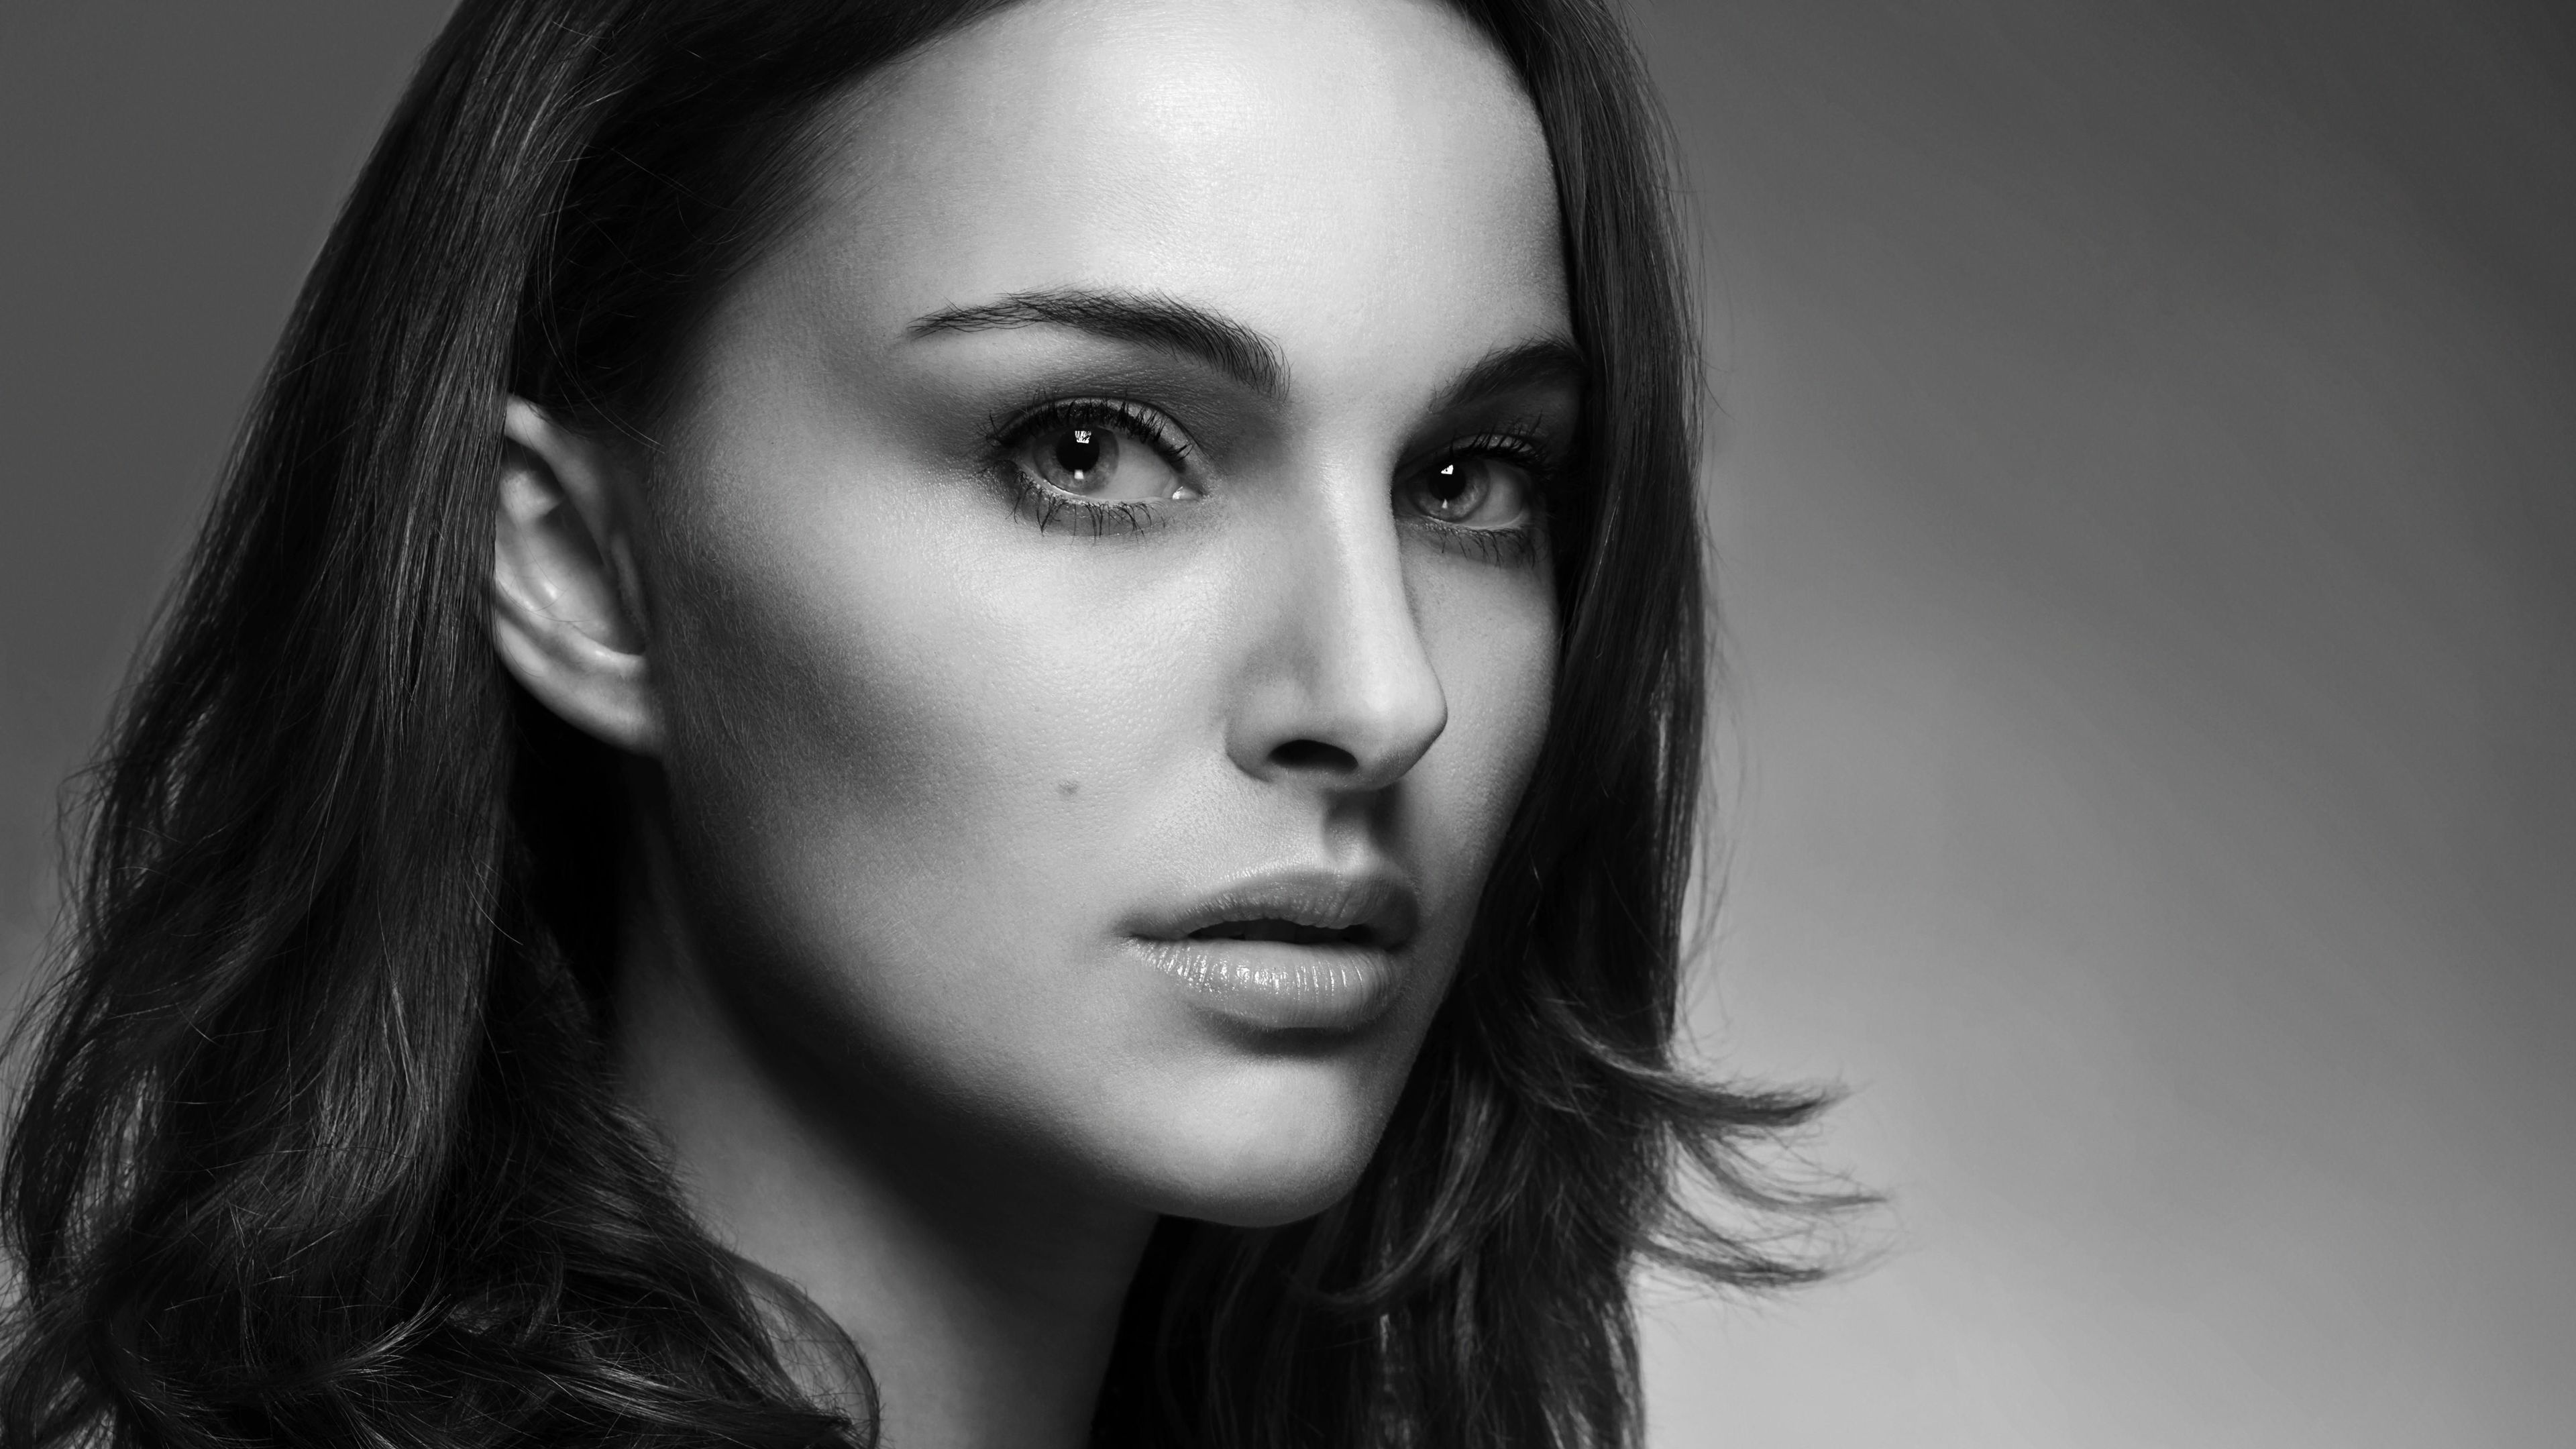 natalie portman new 2019 4k 1553073761 - Natalie Portman New 2019 4k - natalie portman wallpapers, hd-wallpapers, girls wallpapers, celebrities wallpapers, 5k wallpapers, 4k-wallpapers